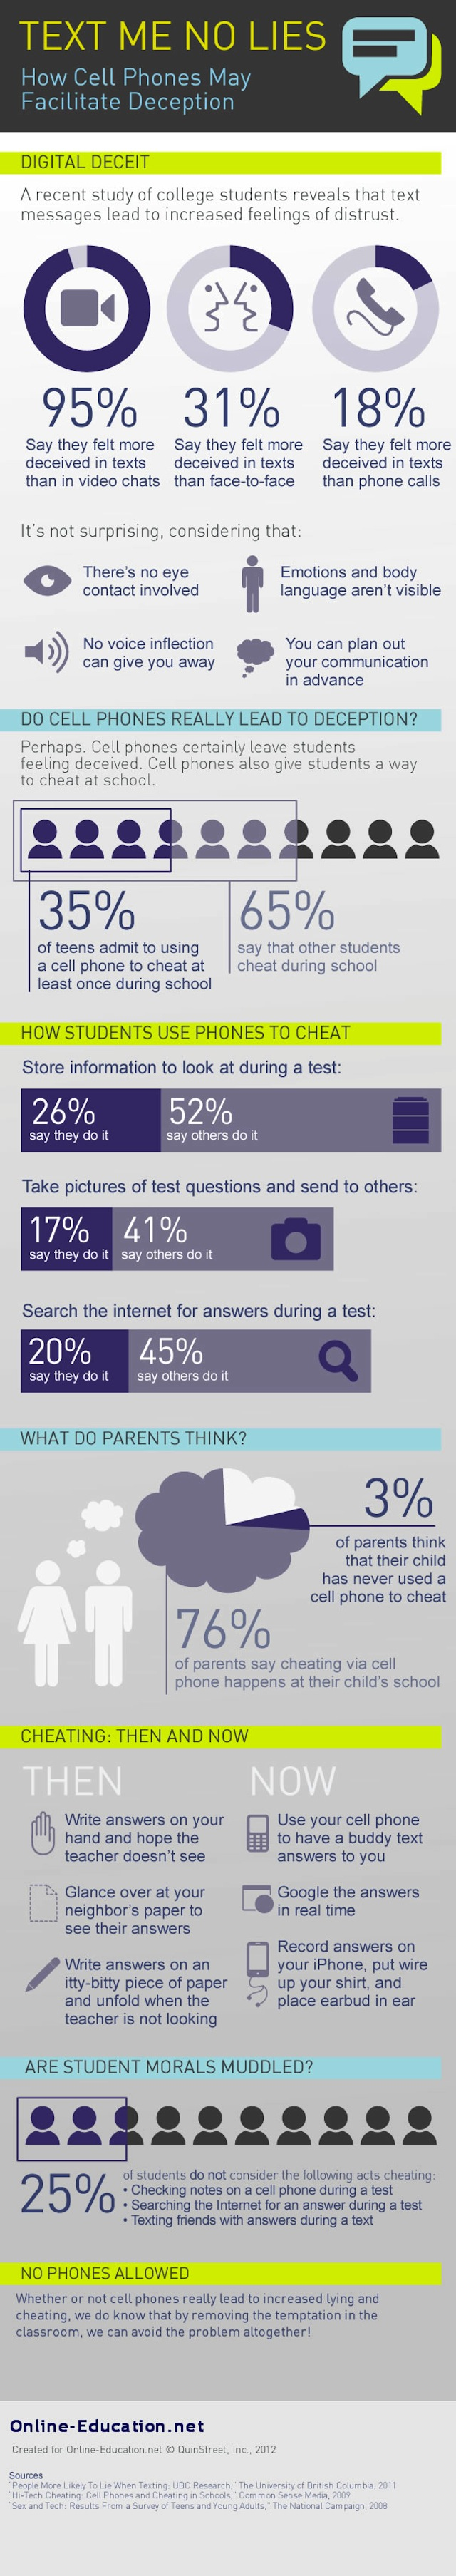 Mobile Mistrust: Are Texters Cheaters? [INFOGRAPHIC]